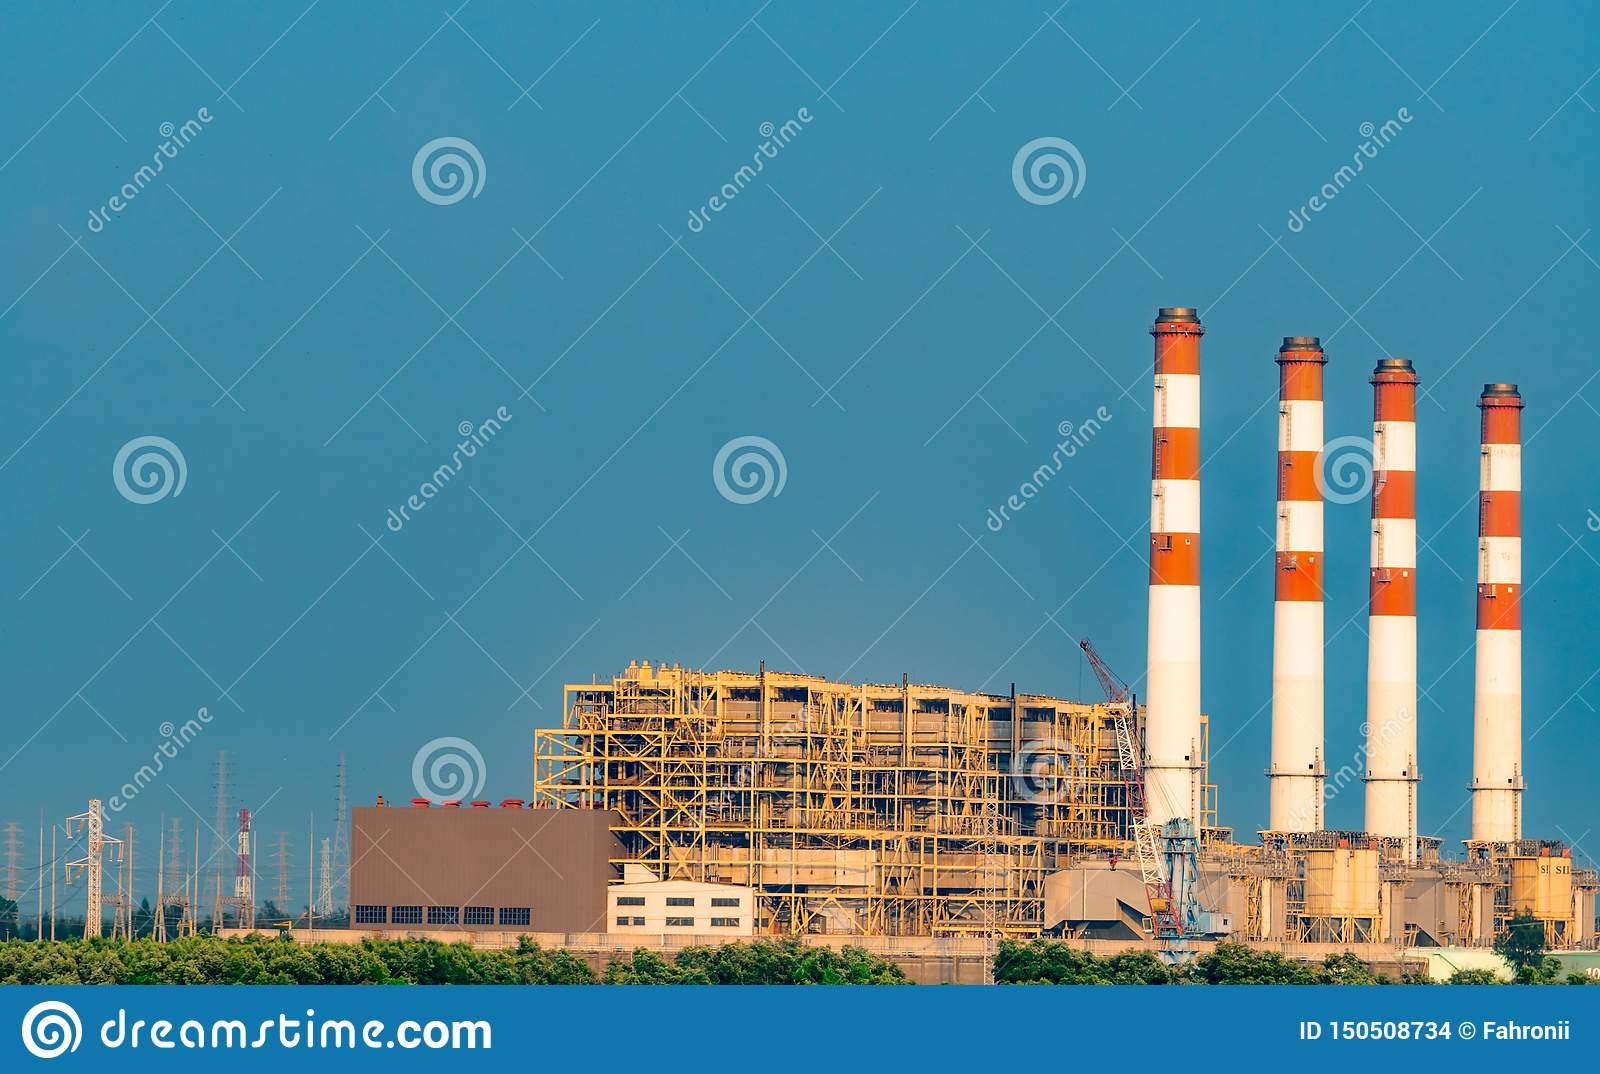 Power Plant. Thermal Power Plant and Combined Cycle Power Plant in Thailand. Power plant using natural gas and petroleum. Air